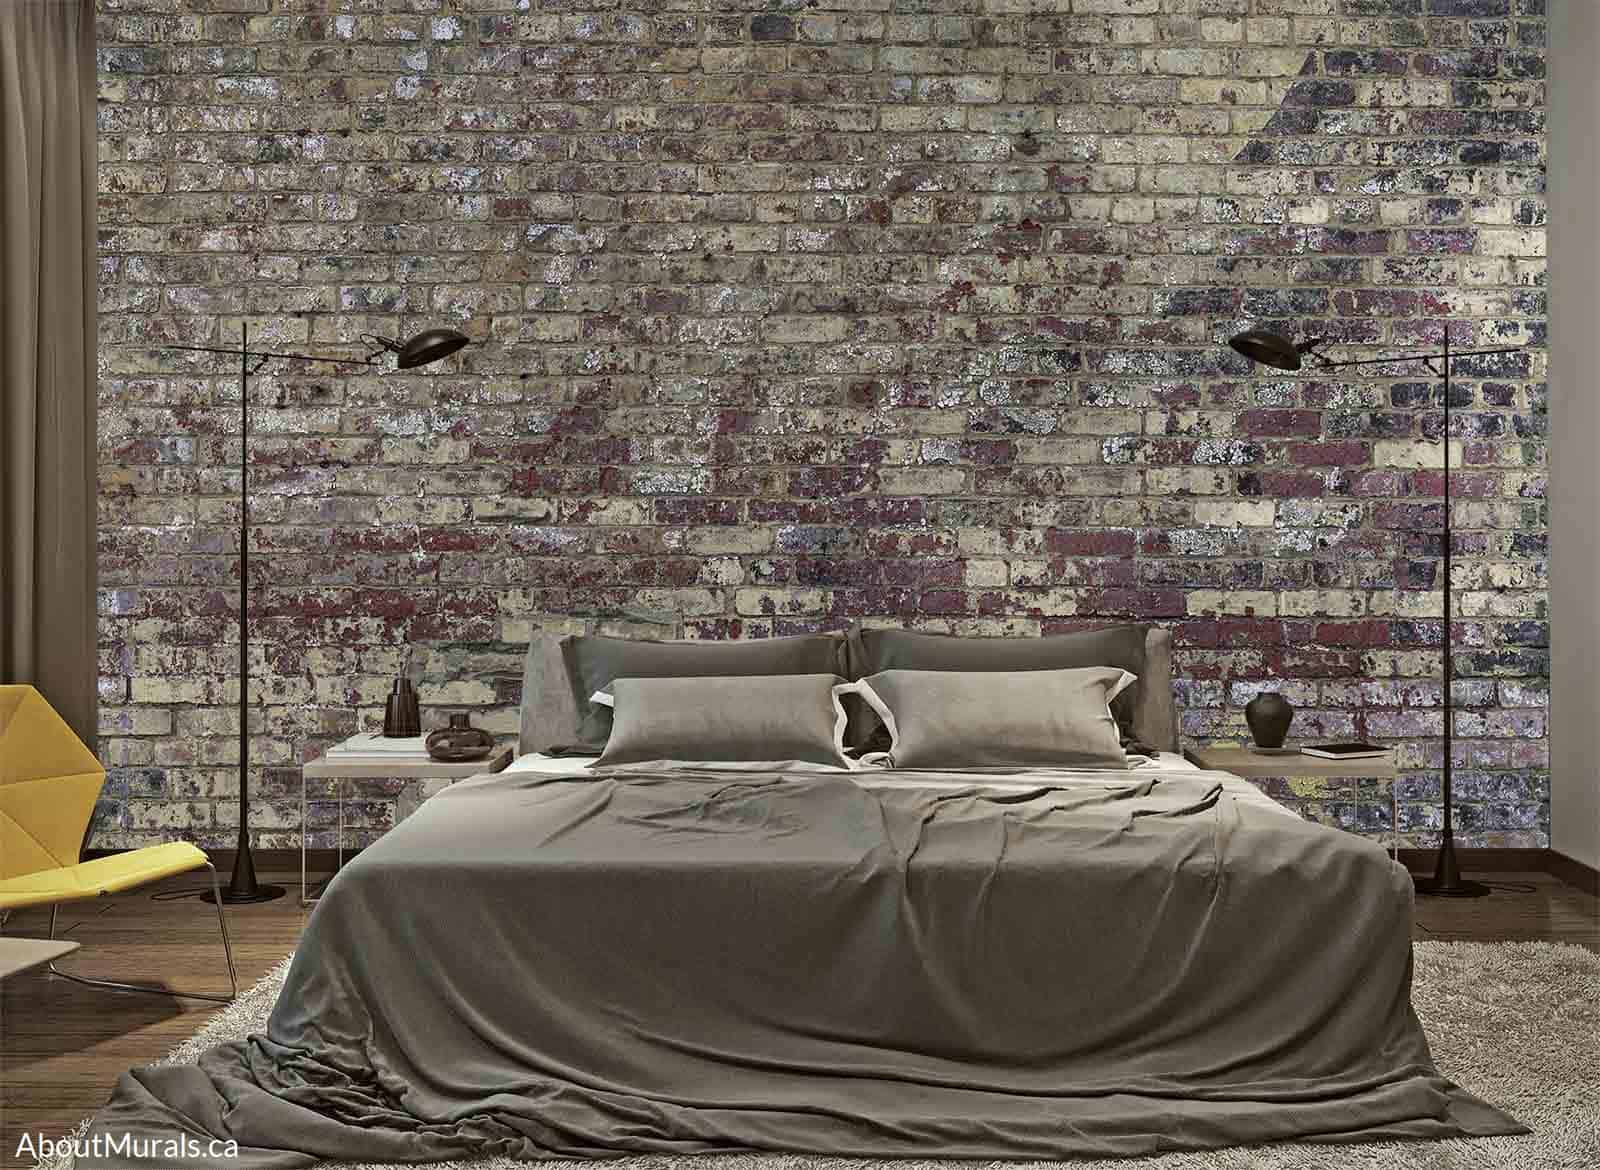 A vintage brick wall mural sits behind a bed in a bedroom. Sold by AboutMurals.ca